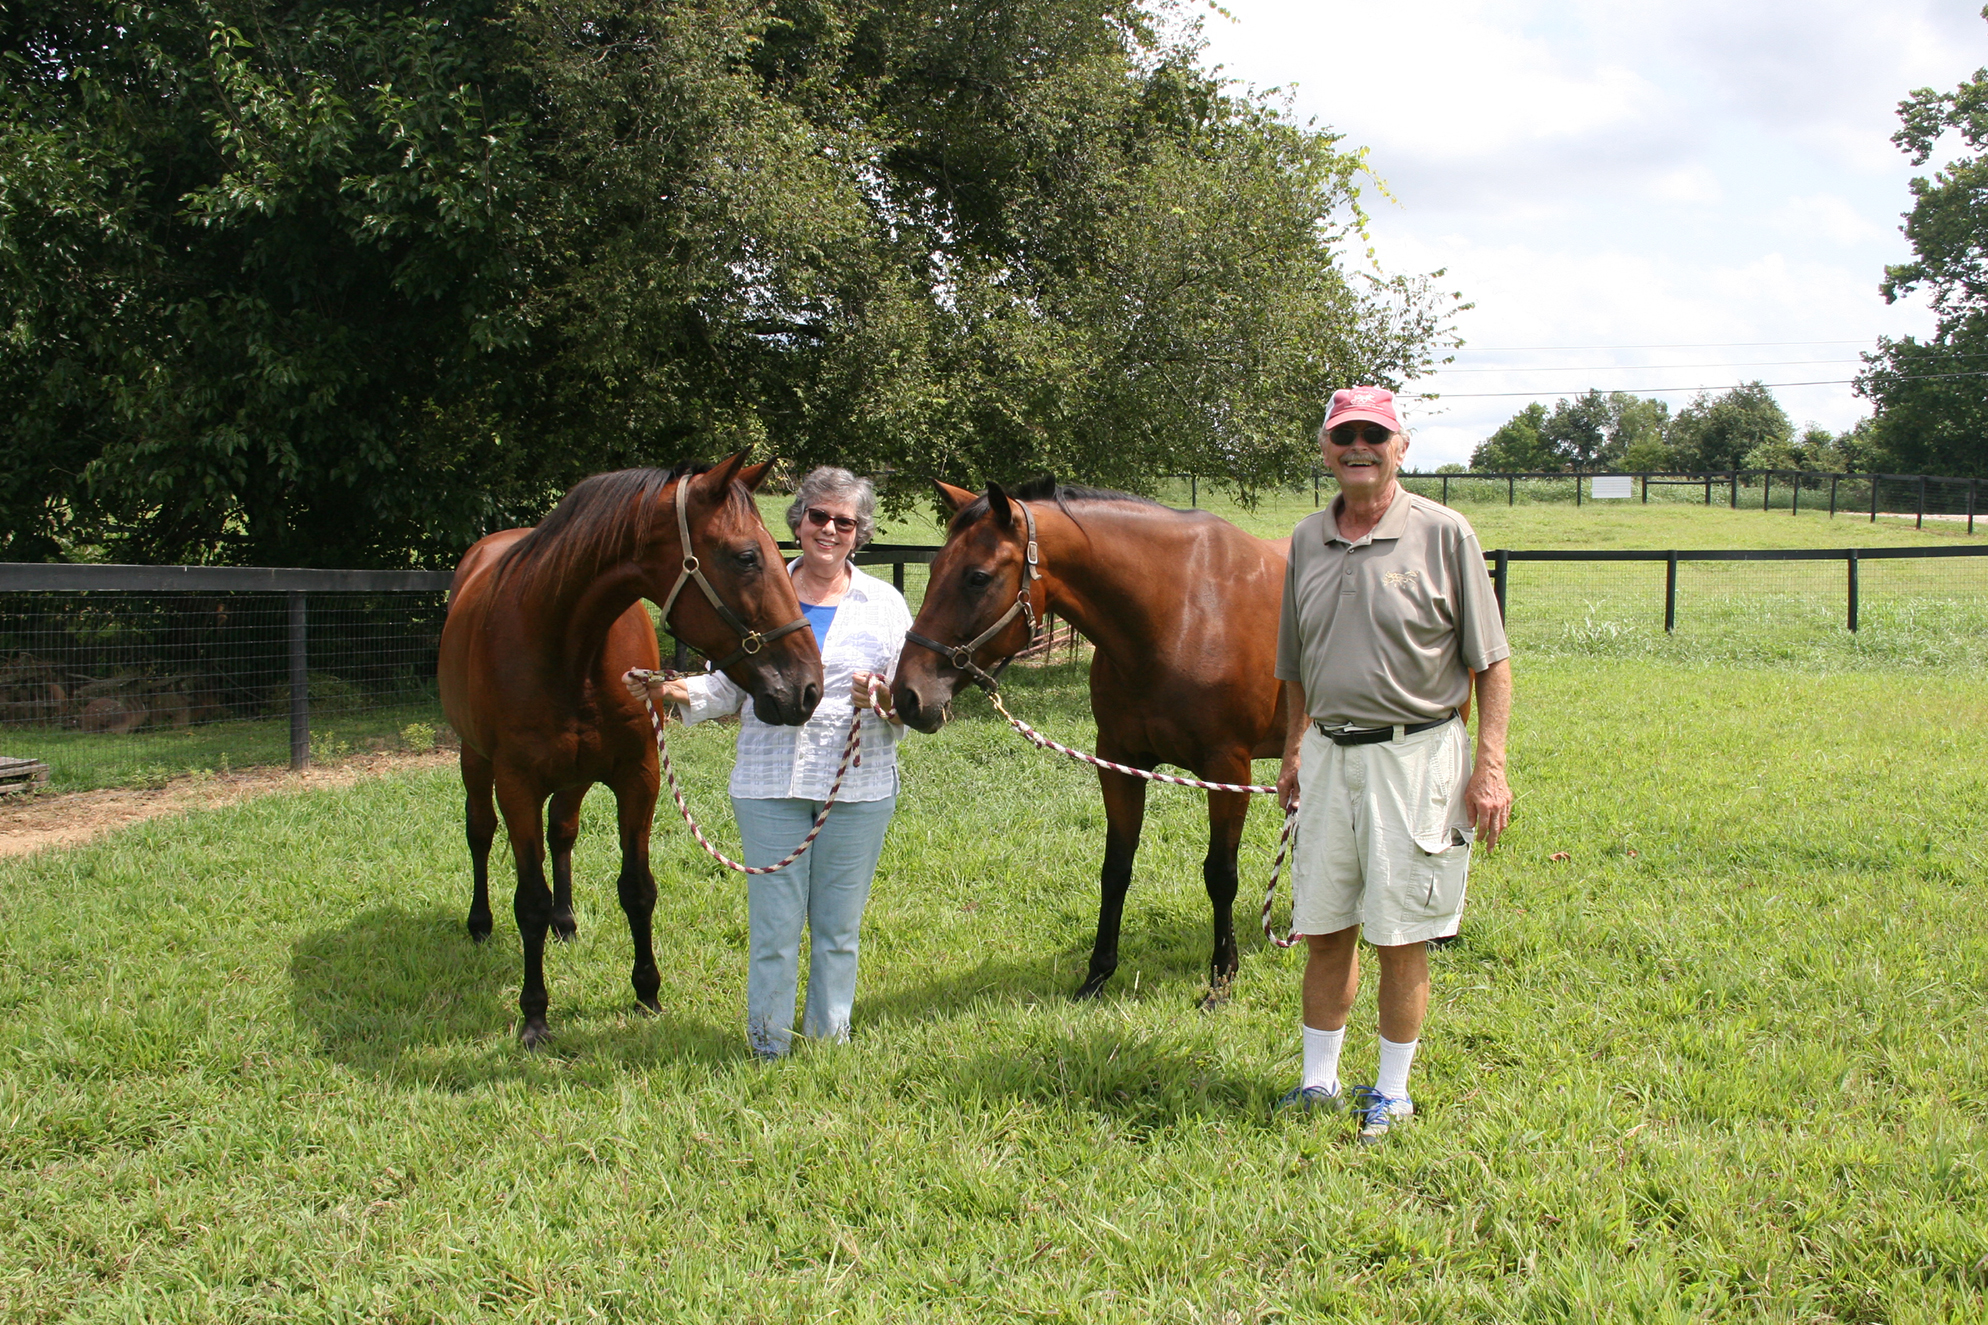 Former cattle rancher turns to harness racing